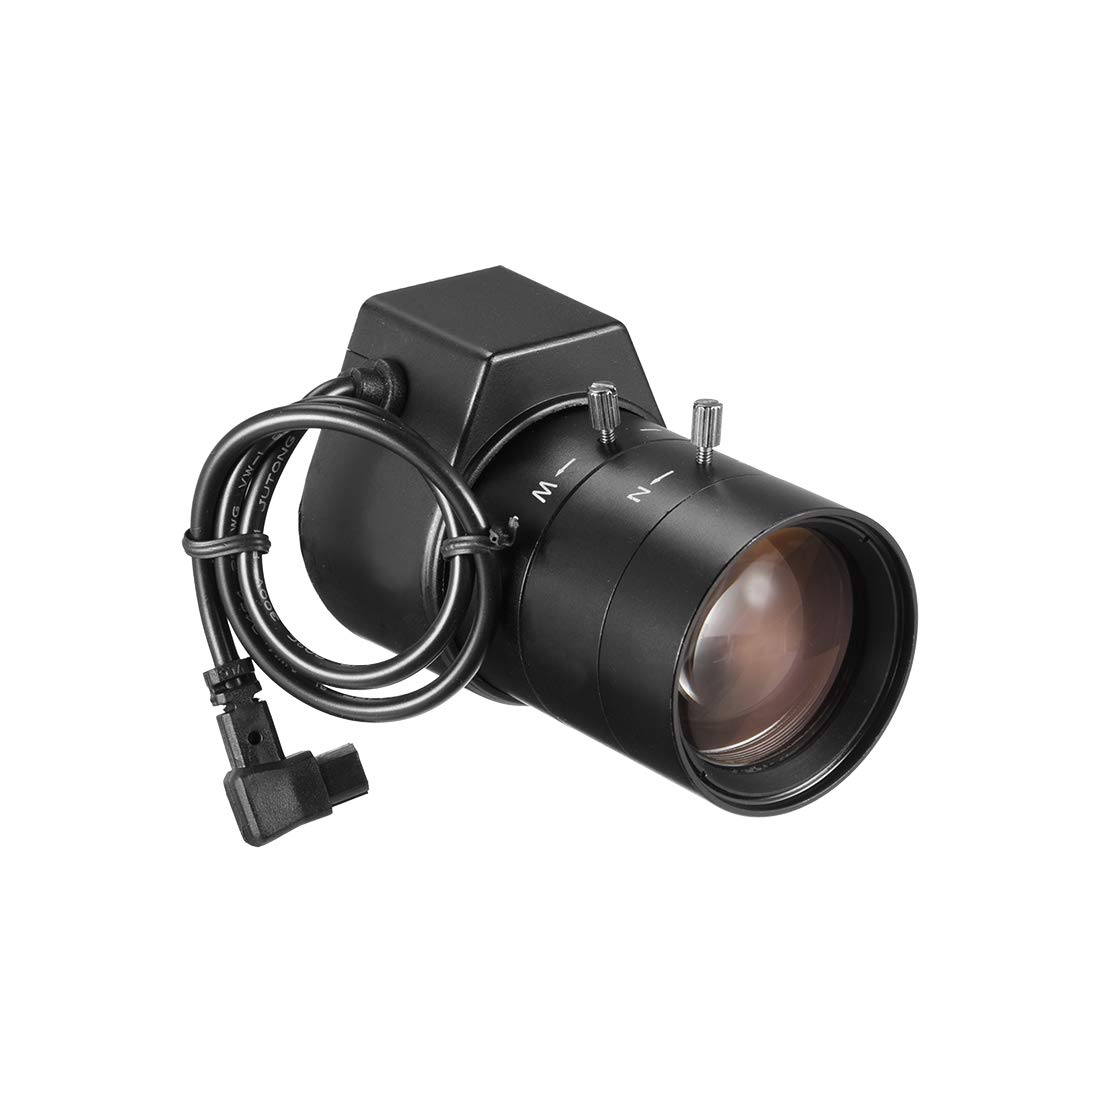 uxcell 6.0-60mm F1.6 FPV CCTV Lens Wide Angle for CCD Camera